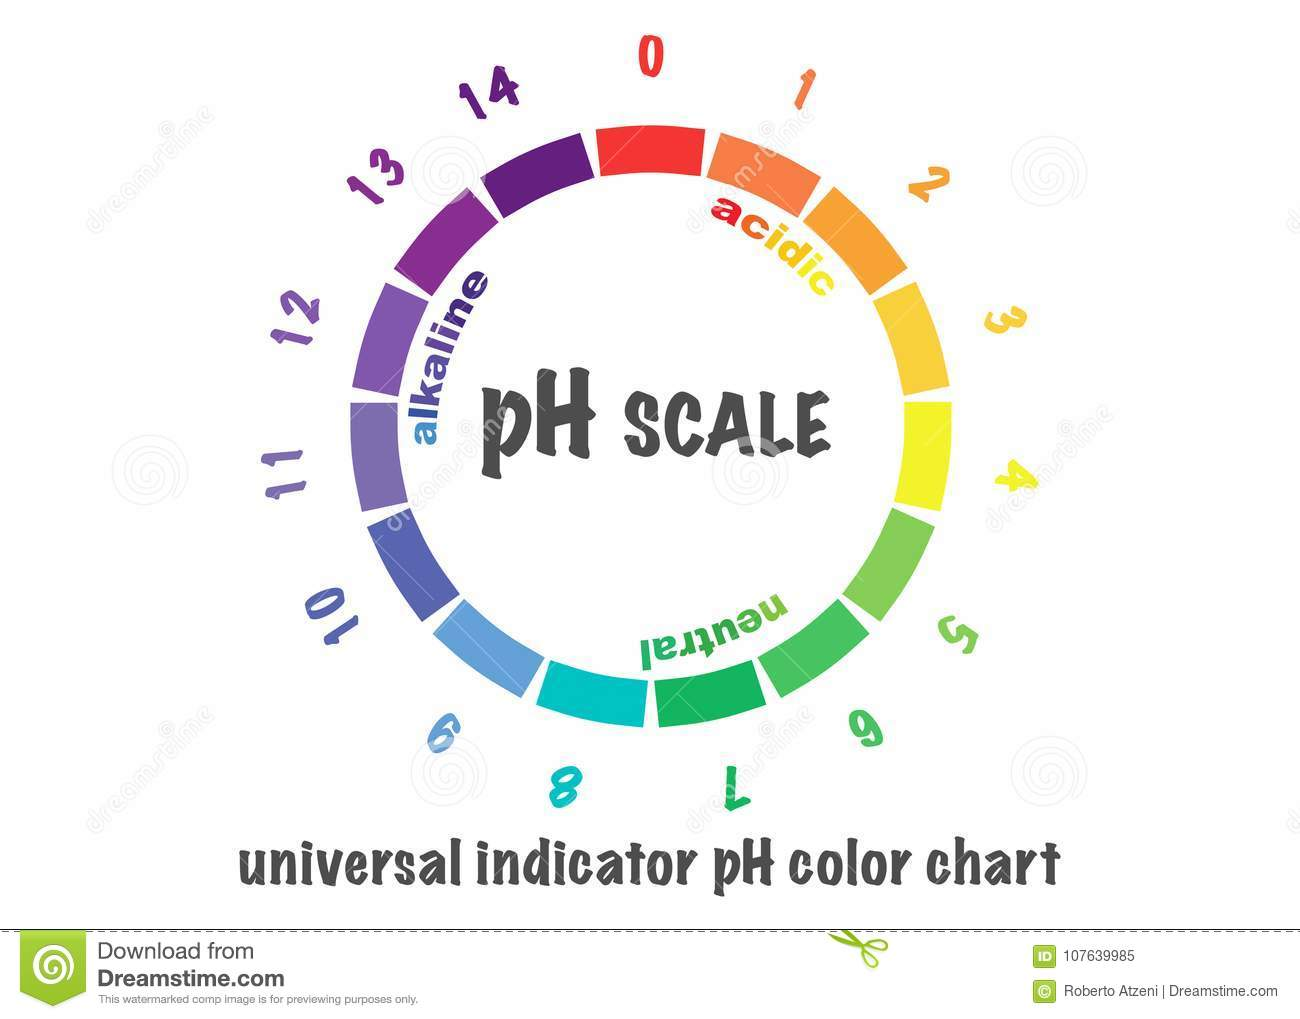 Ph level color chart gallery free any chart examples universal ph indicator color chart image collections free any indicator color chart choice image free any nvjuhfo Choice Image